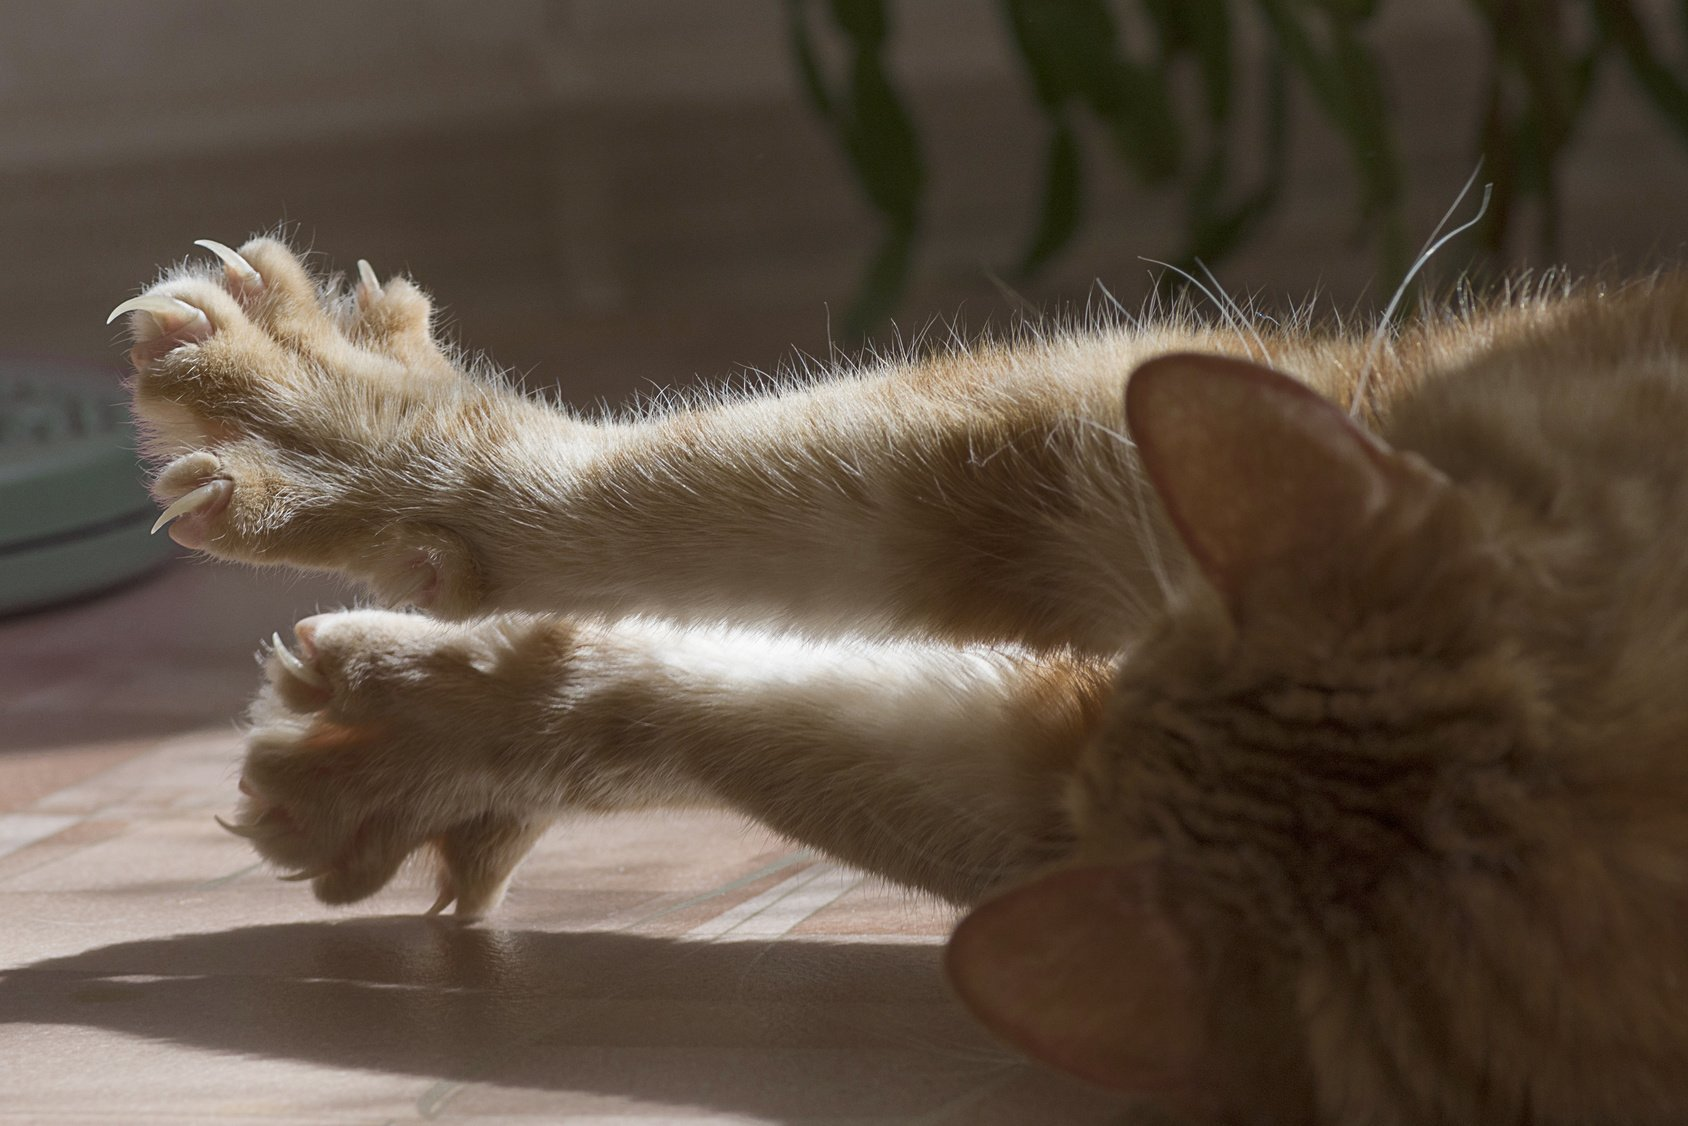 Declawing Cats: Why You Should Never Consider This An Option